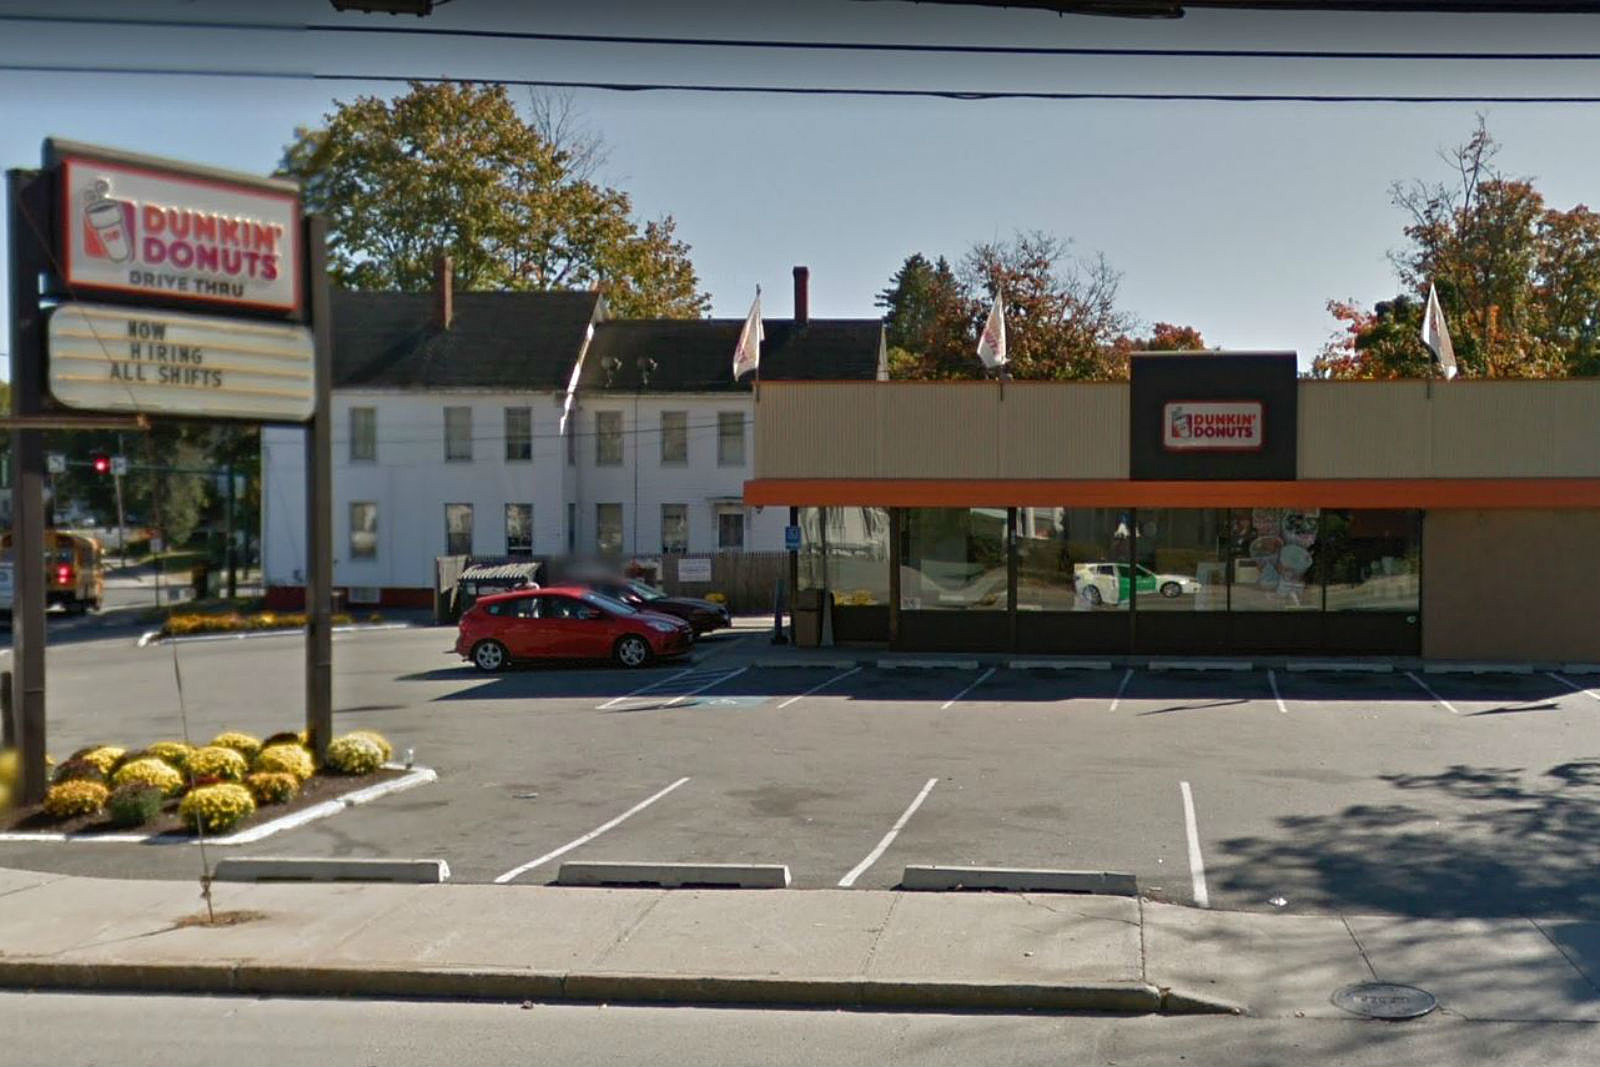 Dunkin donuts westbrook maine